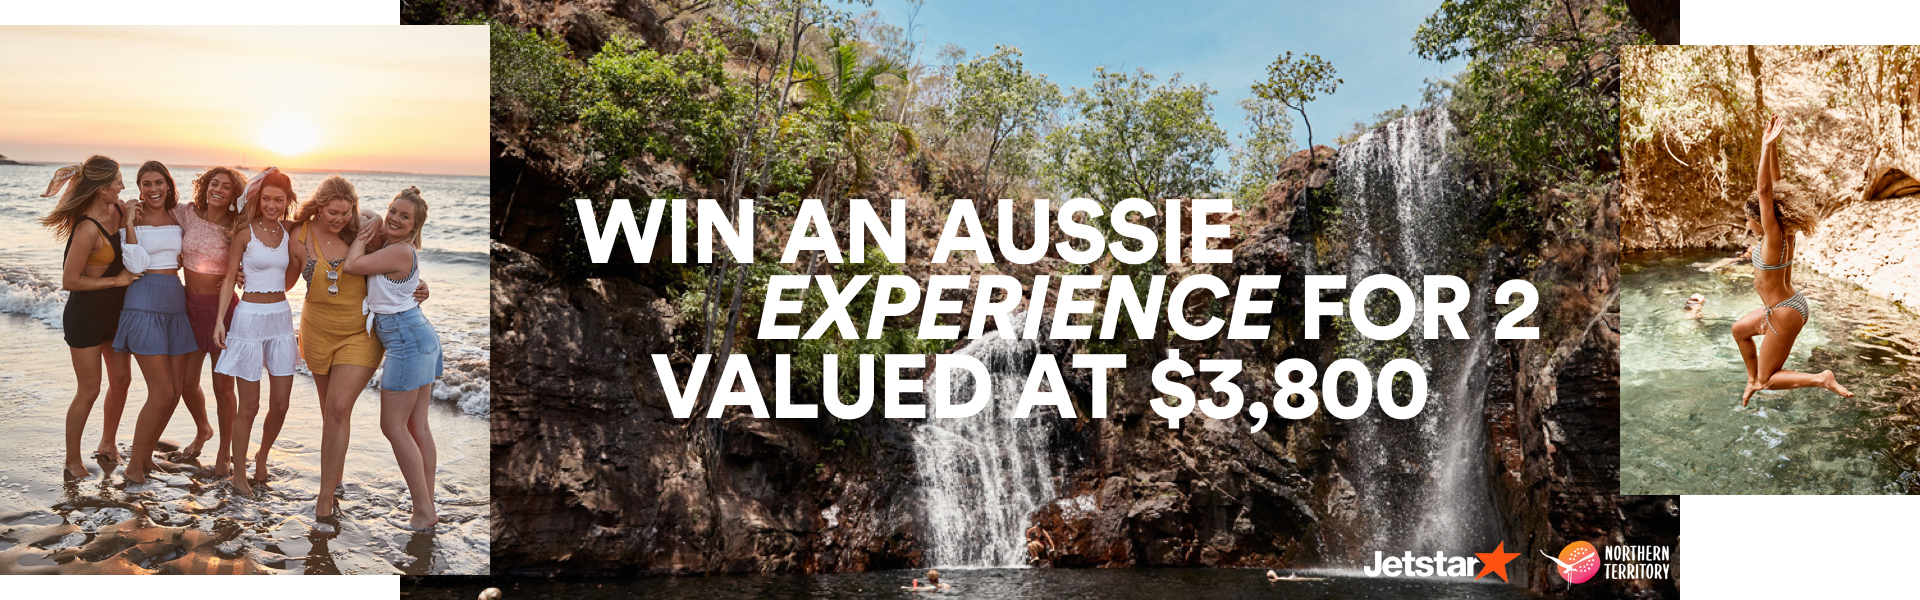 Cotton On Body Competition. Win an Aussie experience.